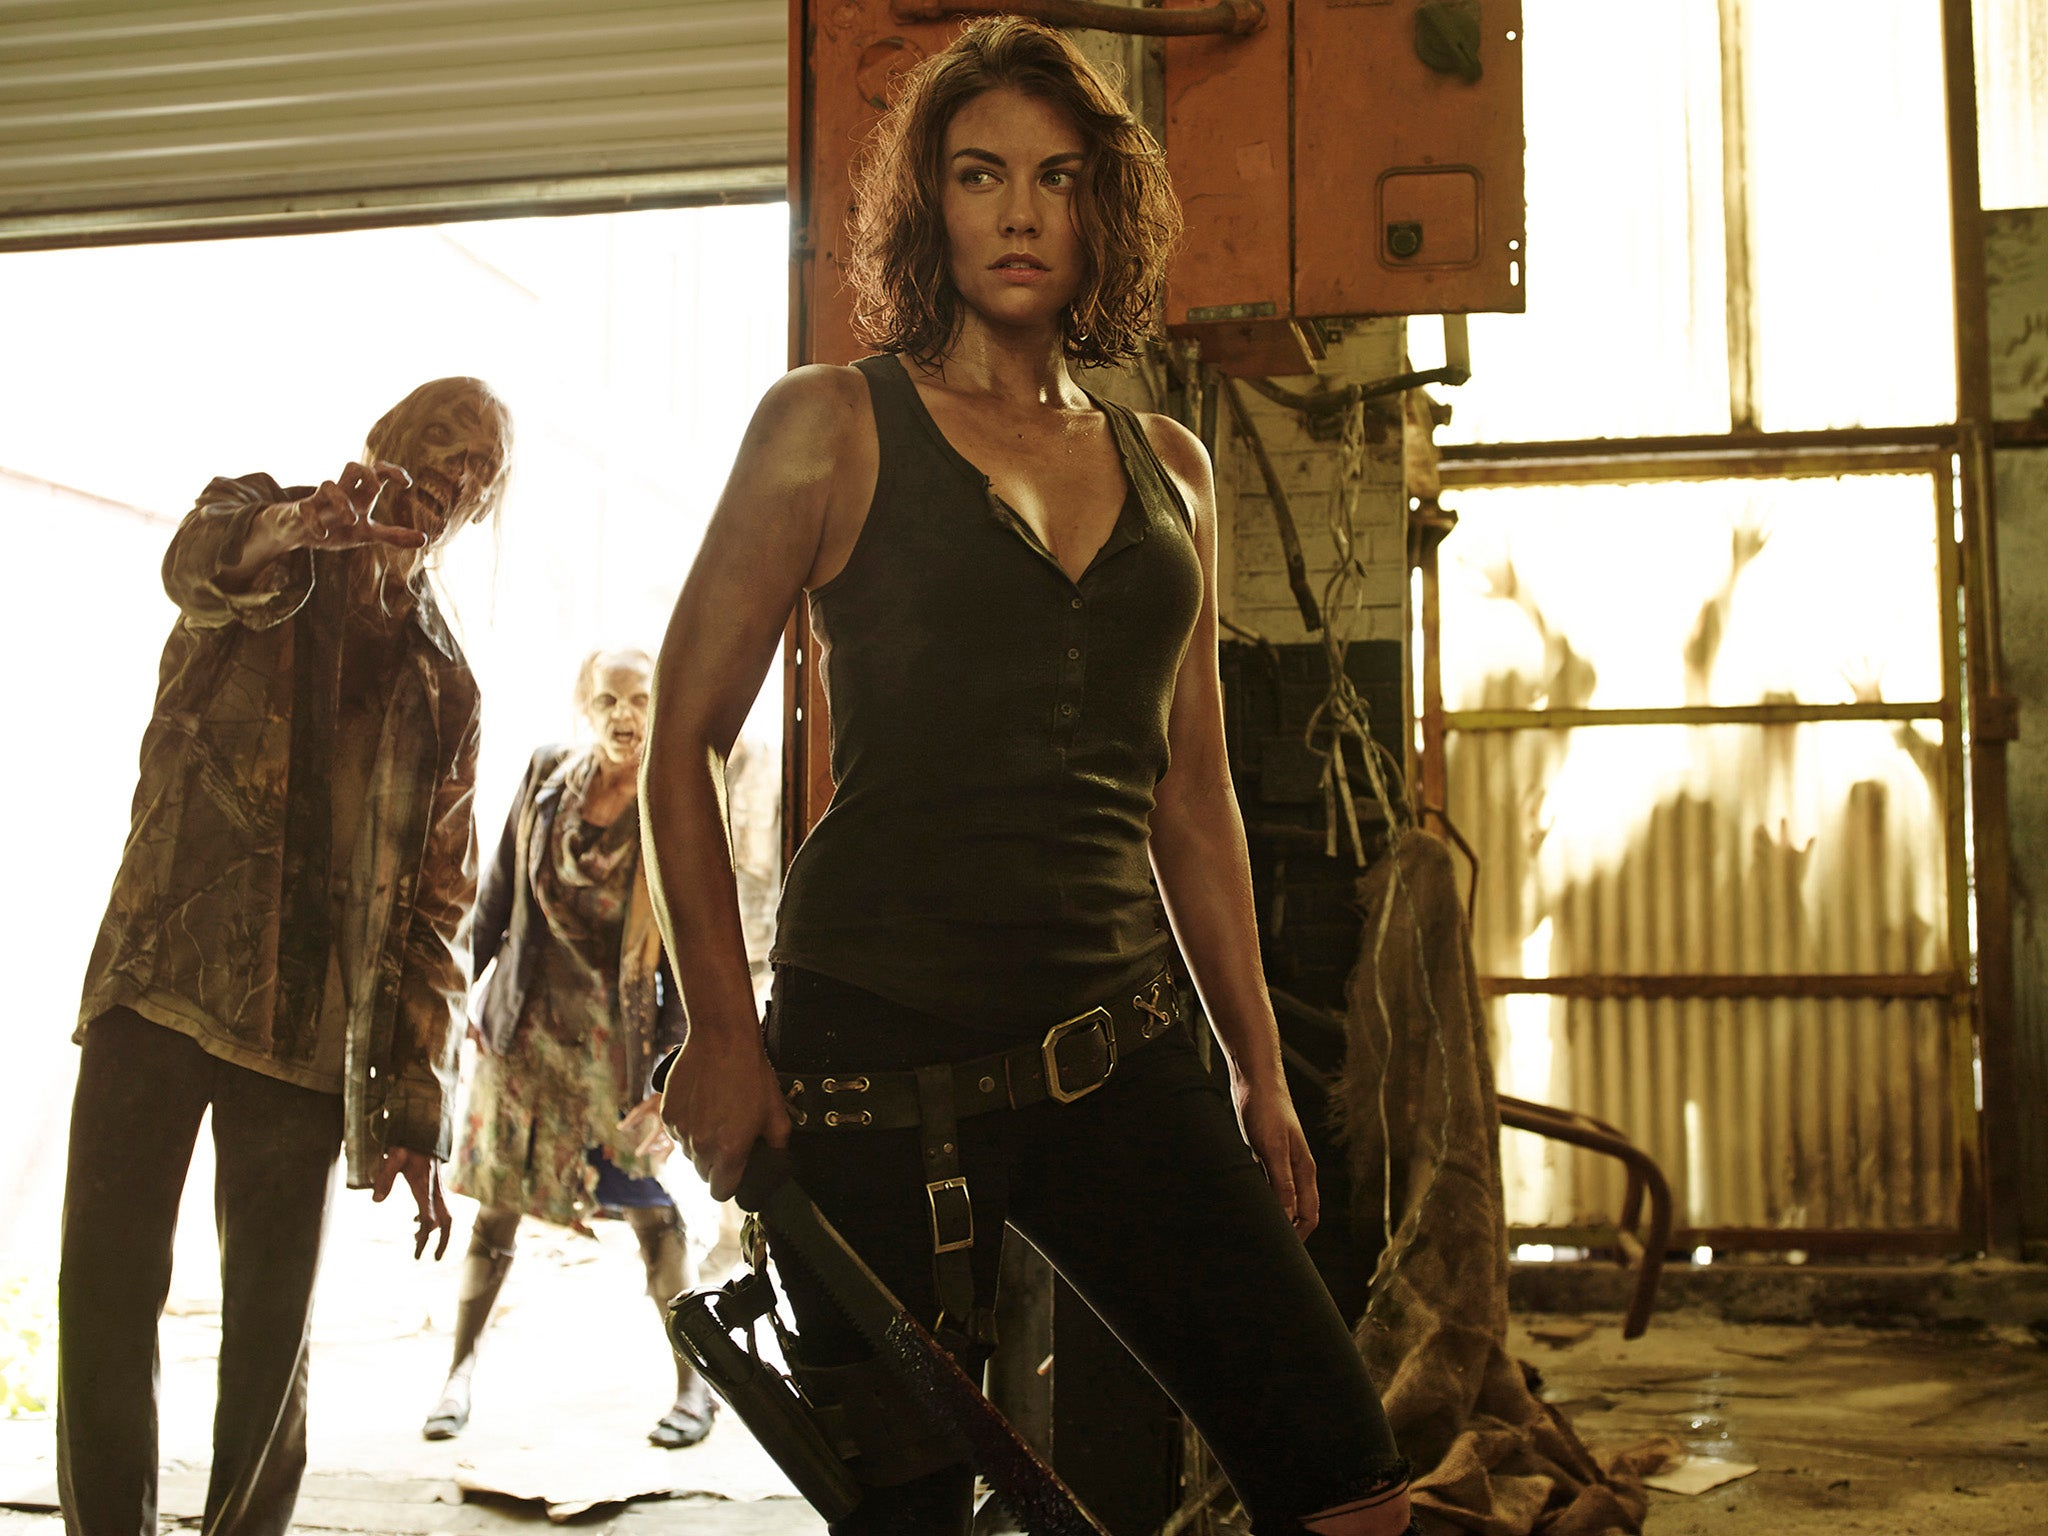 The Walking Dead 'working on' bringing back Lauren Cohan's Maggie for season 10